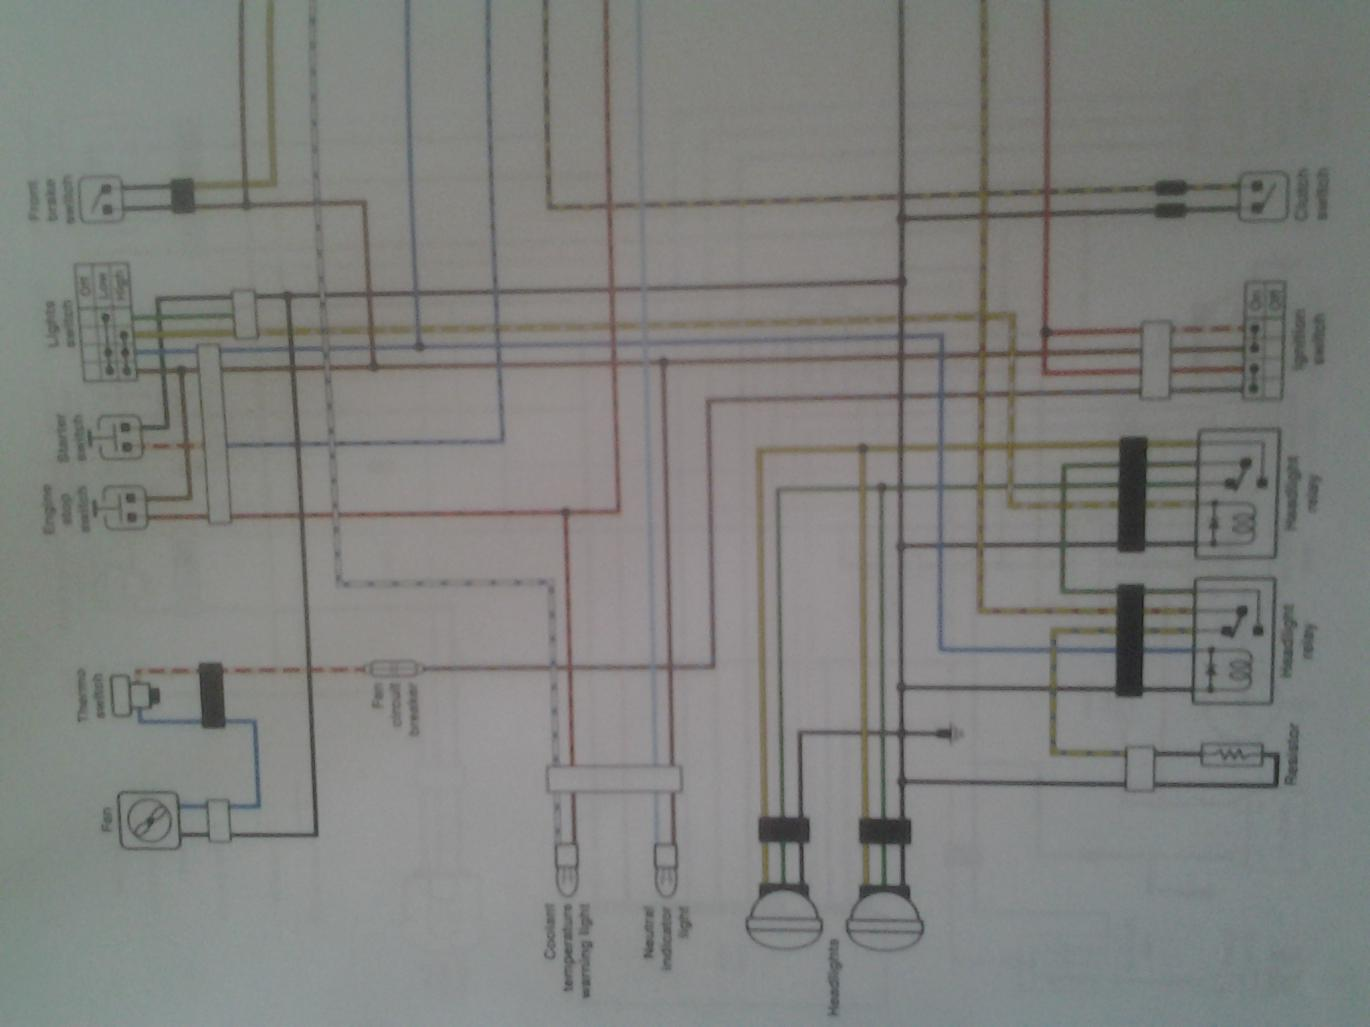 Trail Tech Vapor Wiring Diagram Get Free Image About Wiring Diagram